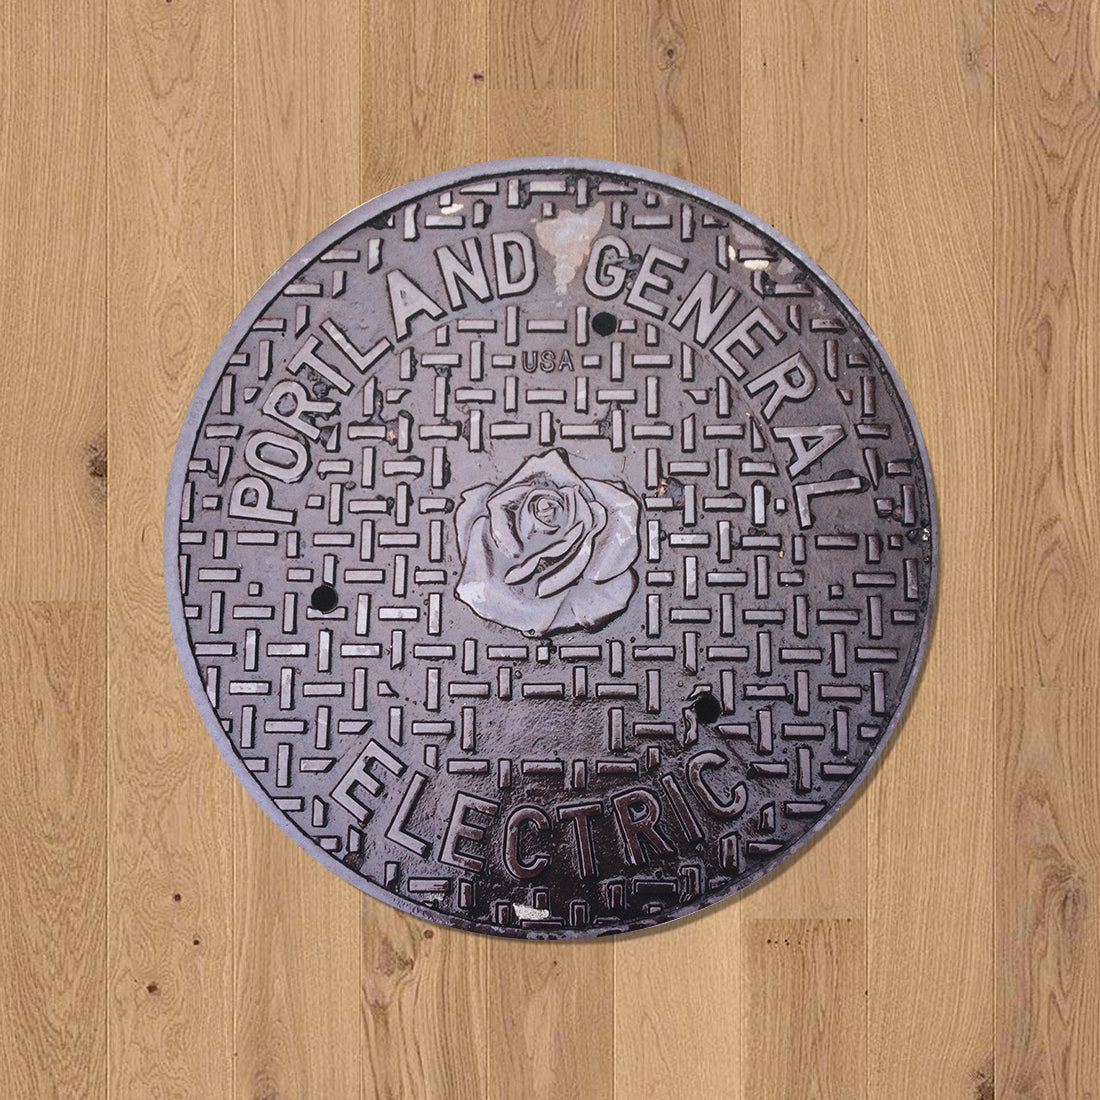 WEST SERIES - Sewer Cover Doormat, Trivet, Coaster - Portland, OR